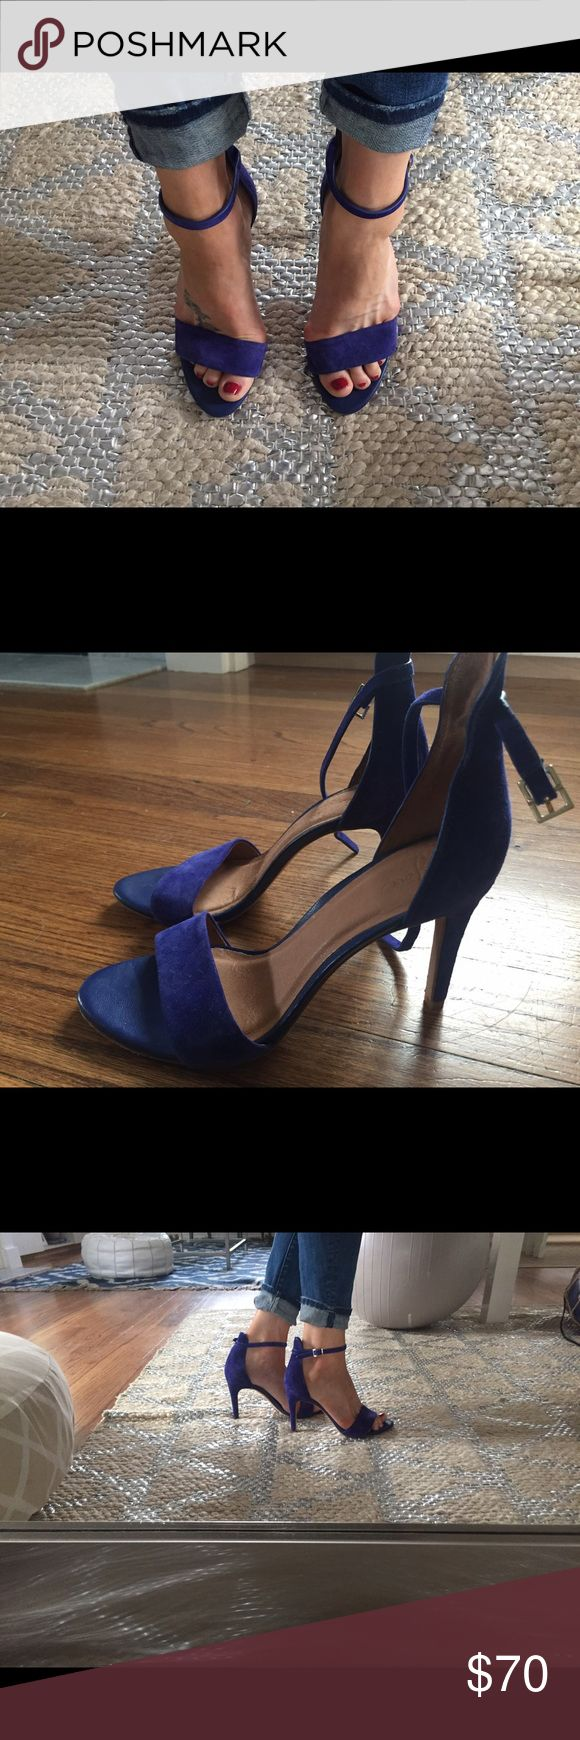 Joie shoes Joie strappt stilettos. Color is purple/cobalt. Suede. Barely worn.  I have these shoes in many colors and love the style. joie Shoes Heels